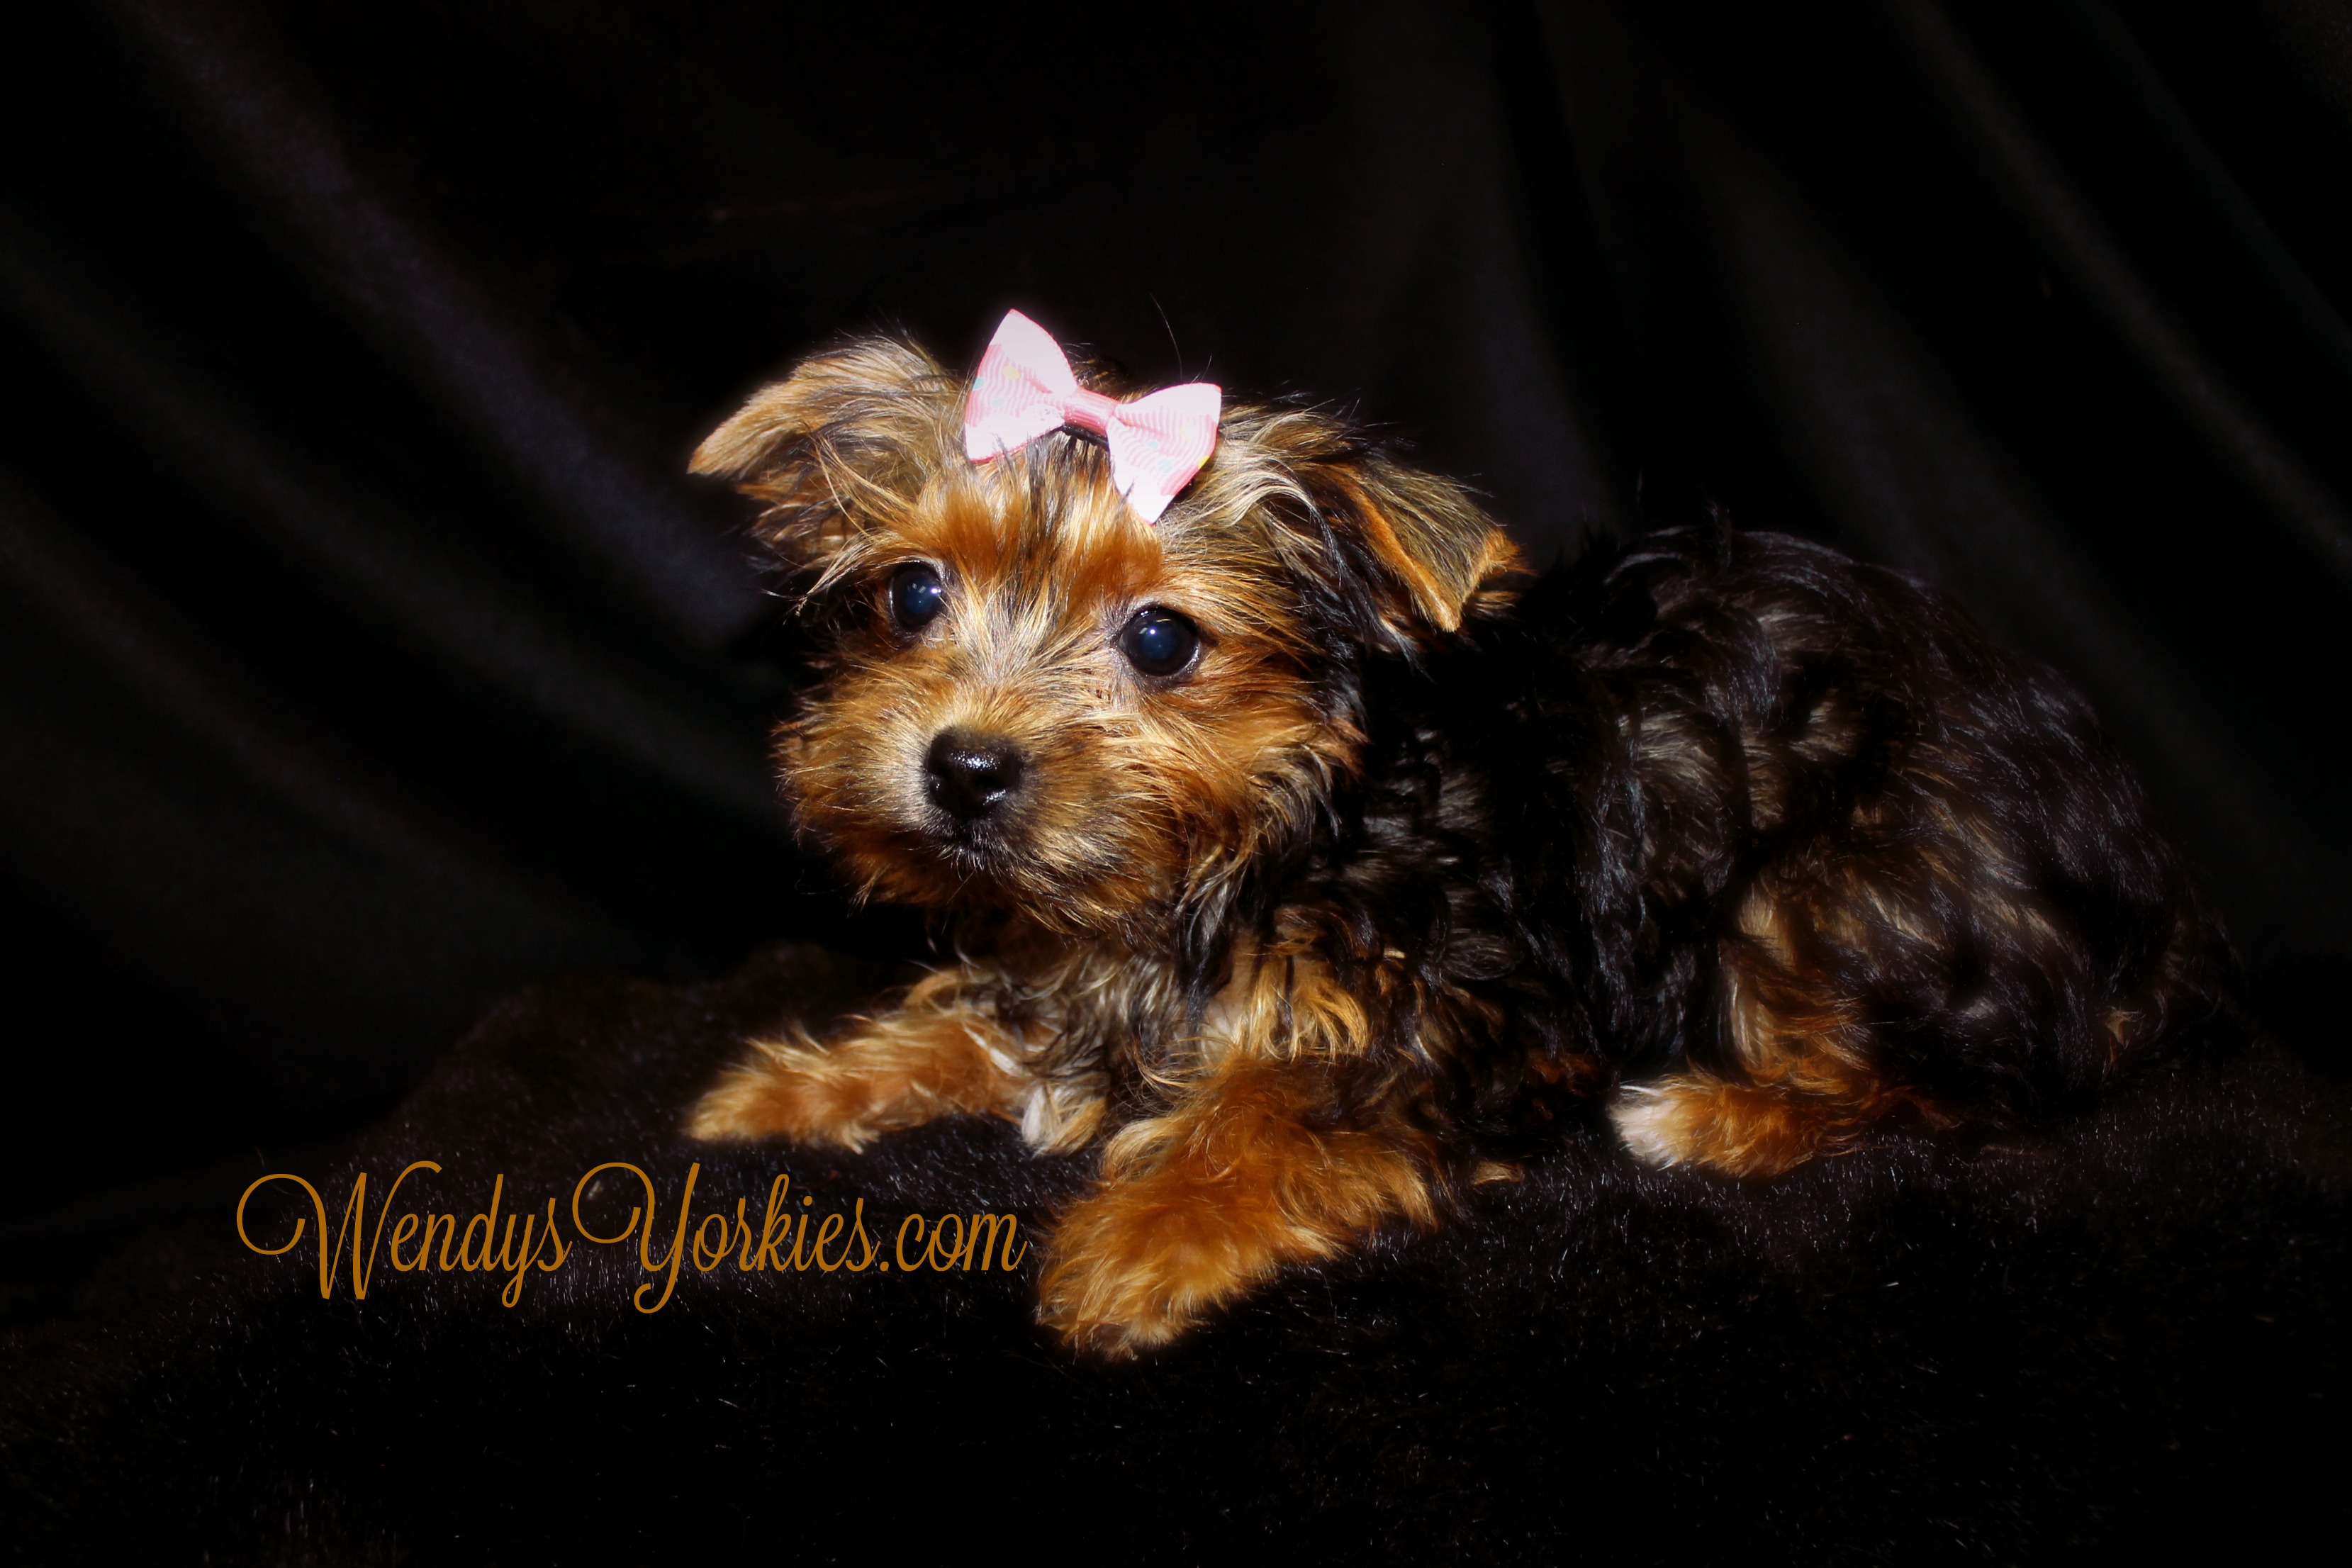 Tiny Yorkie puppies for sale, WendysYorkies.com, Phoebebitty